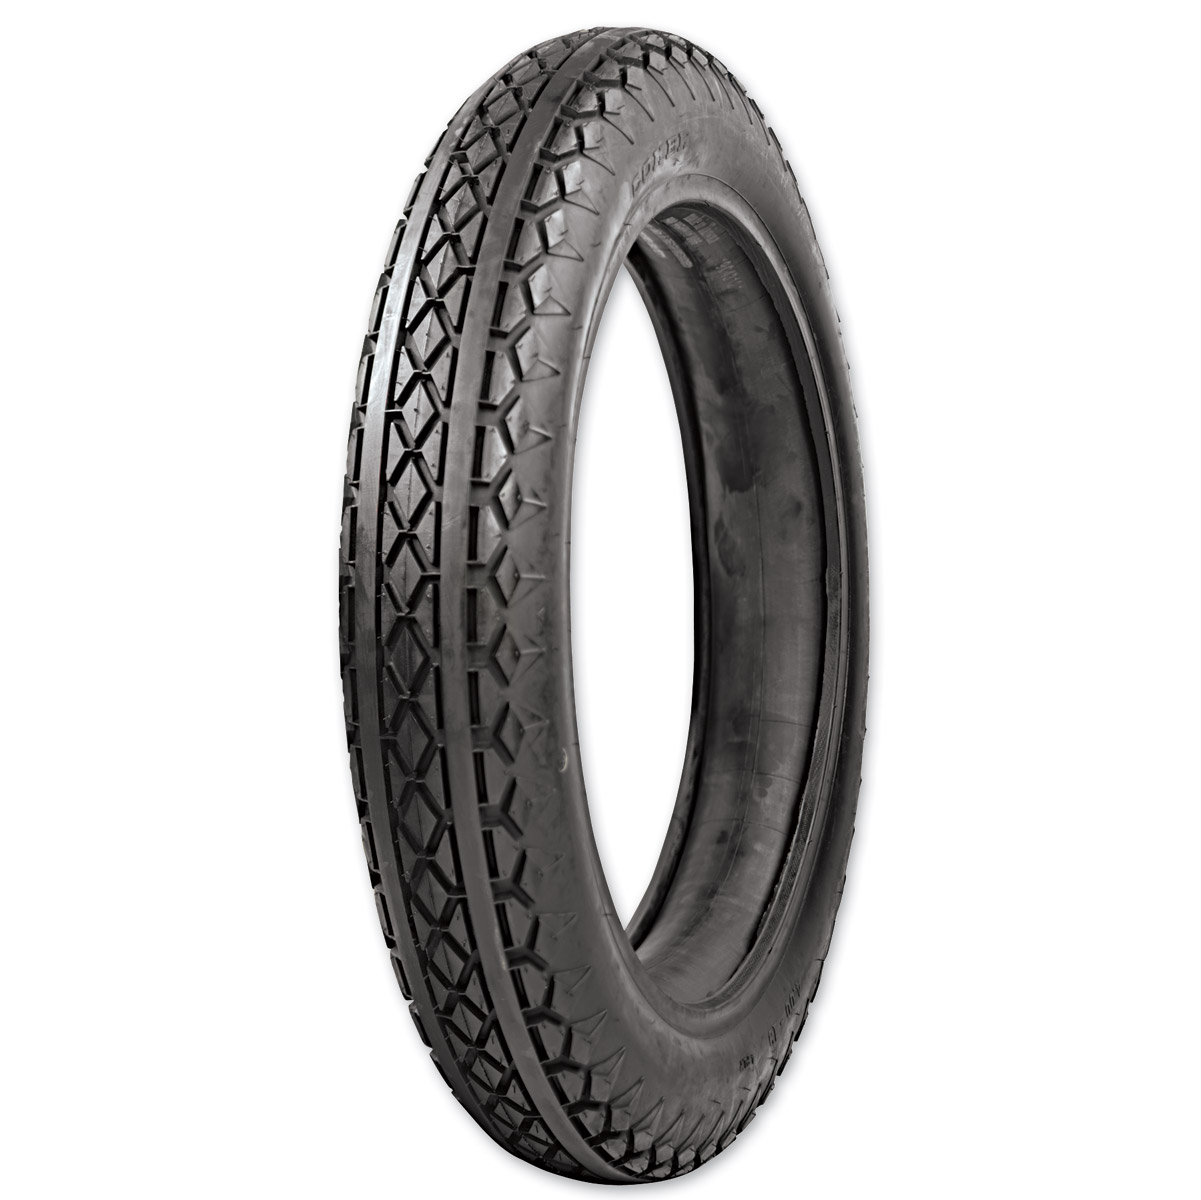 Coker Diamond Tread 4.00-18 Front or Rear Tire